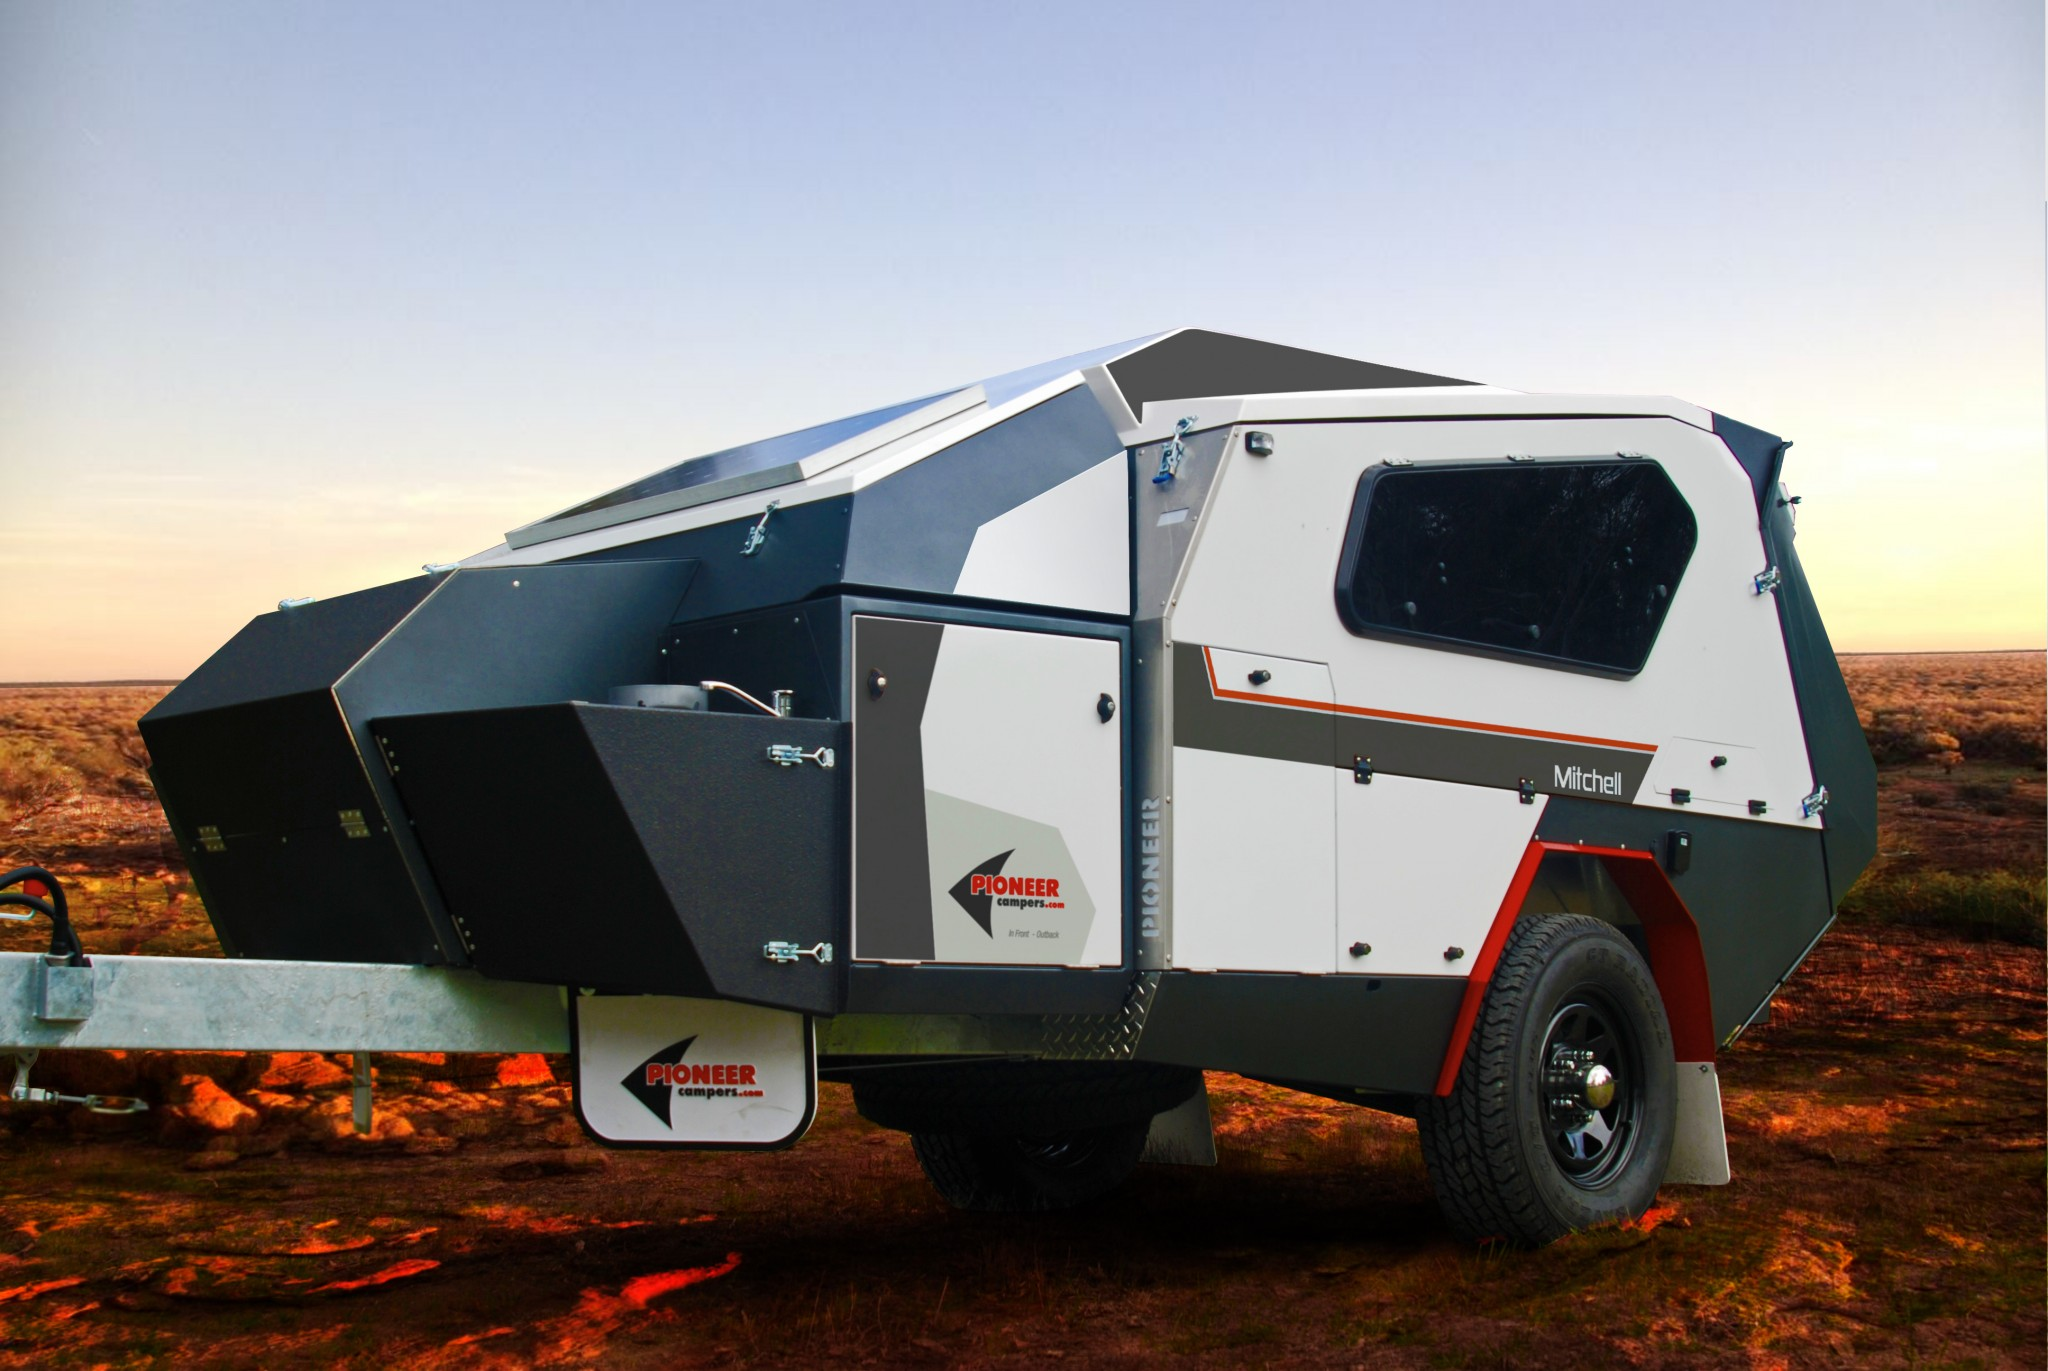 New Pioneer Camper Trailer: The Details